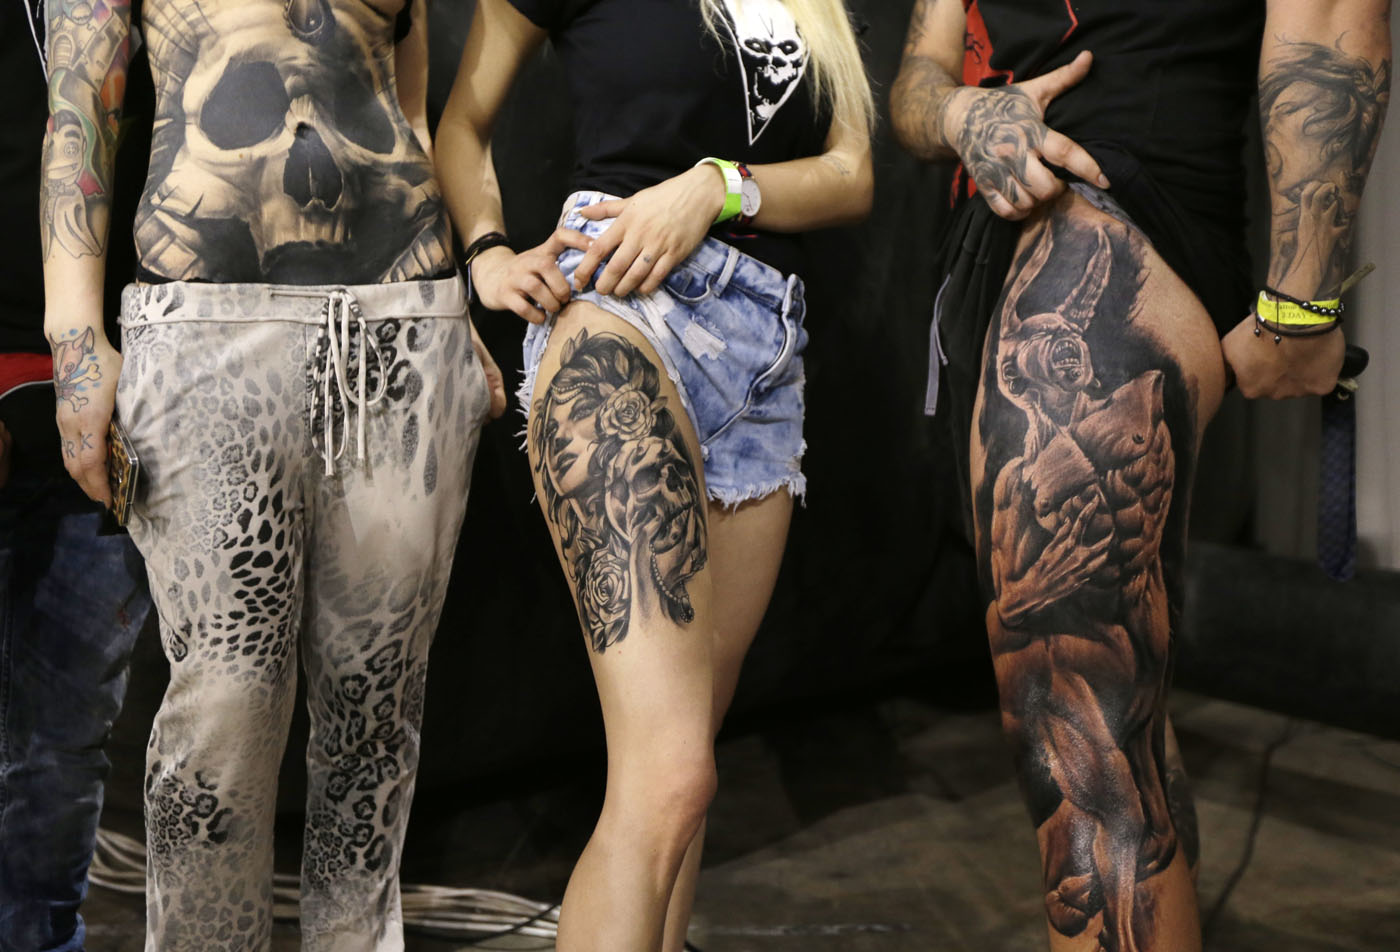 Tattoo Convention The Three Day Event Attracted Thousands Of Visitors